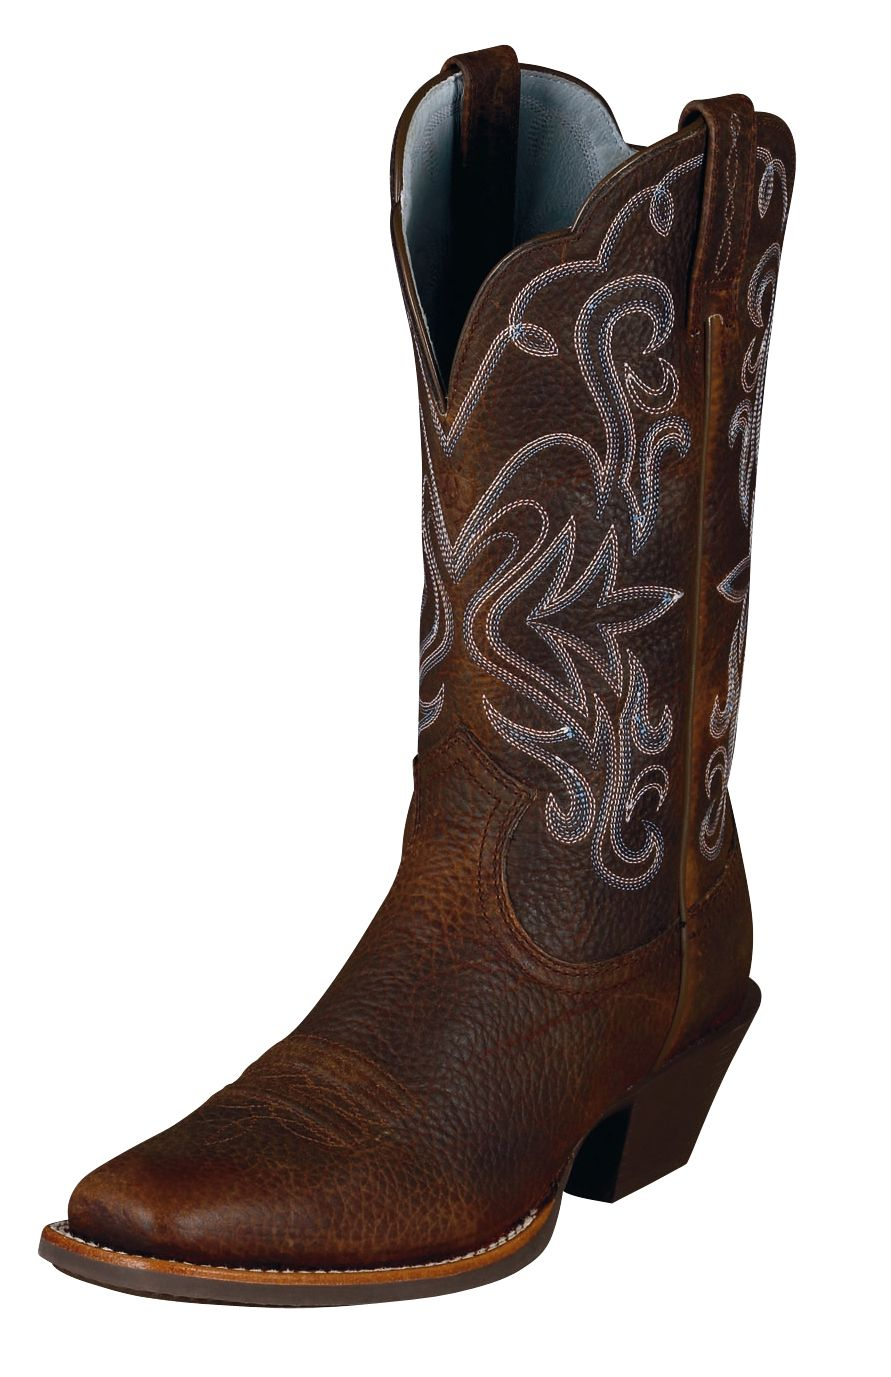 8c7fcc5a095 Ariat Womens Legend Cowgirl Boots - Item # 20033 - 11